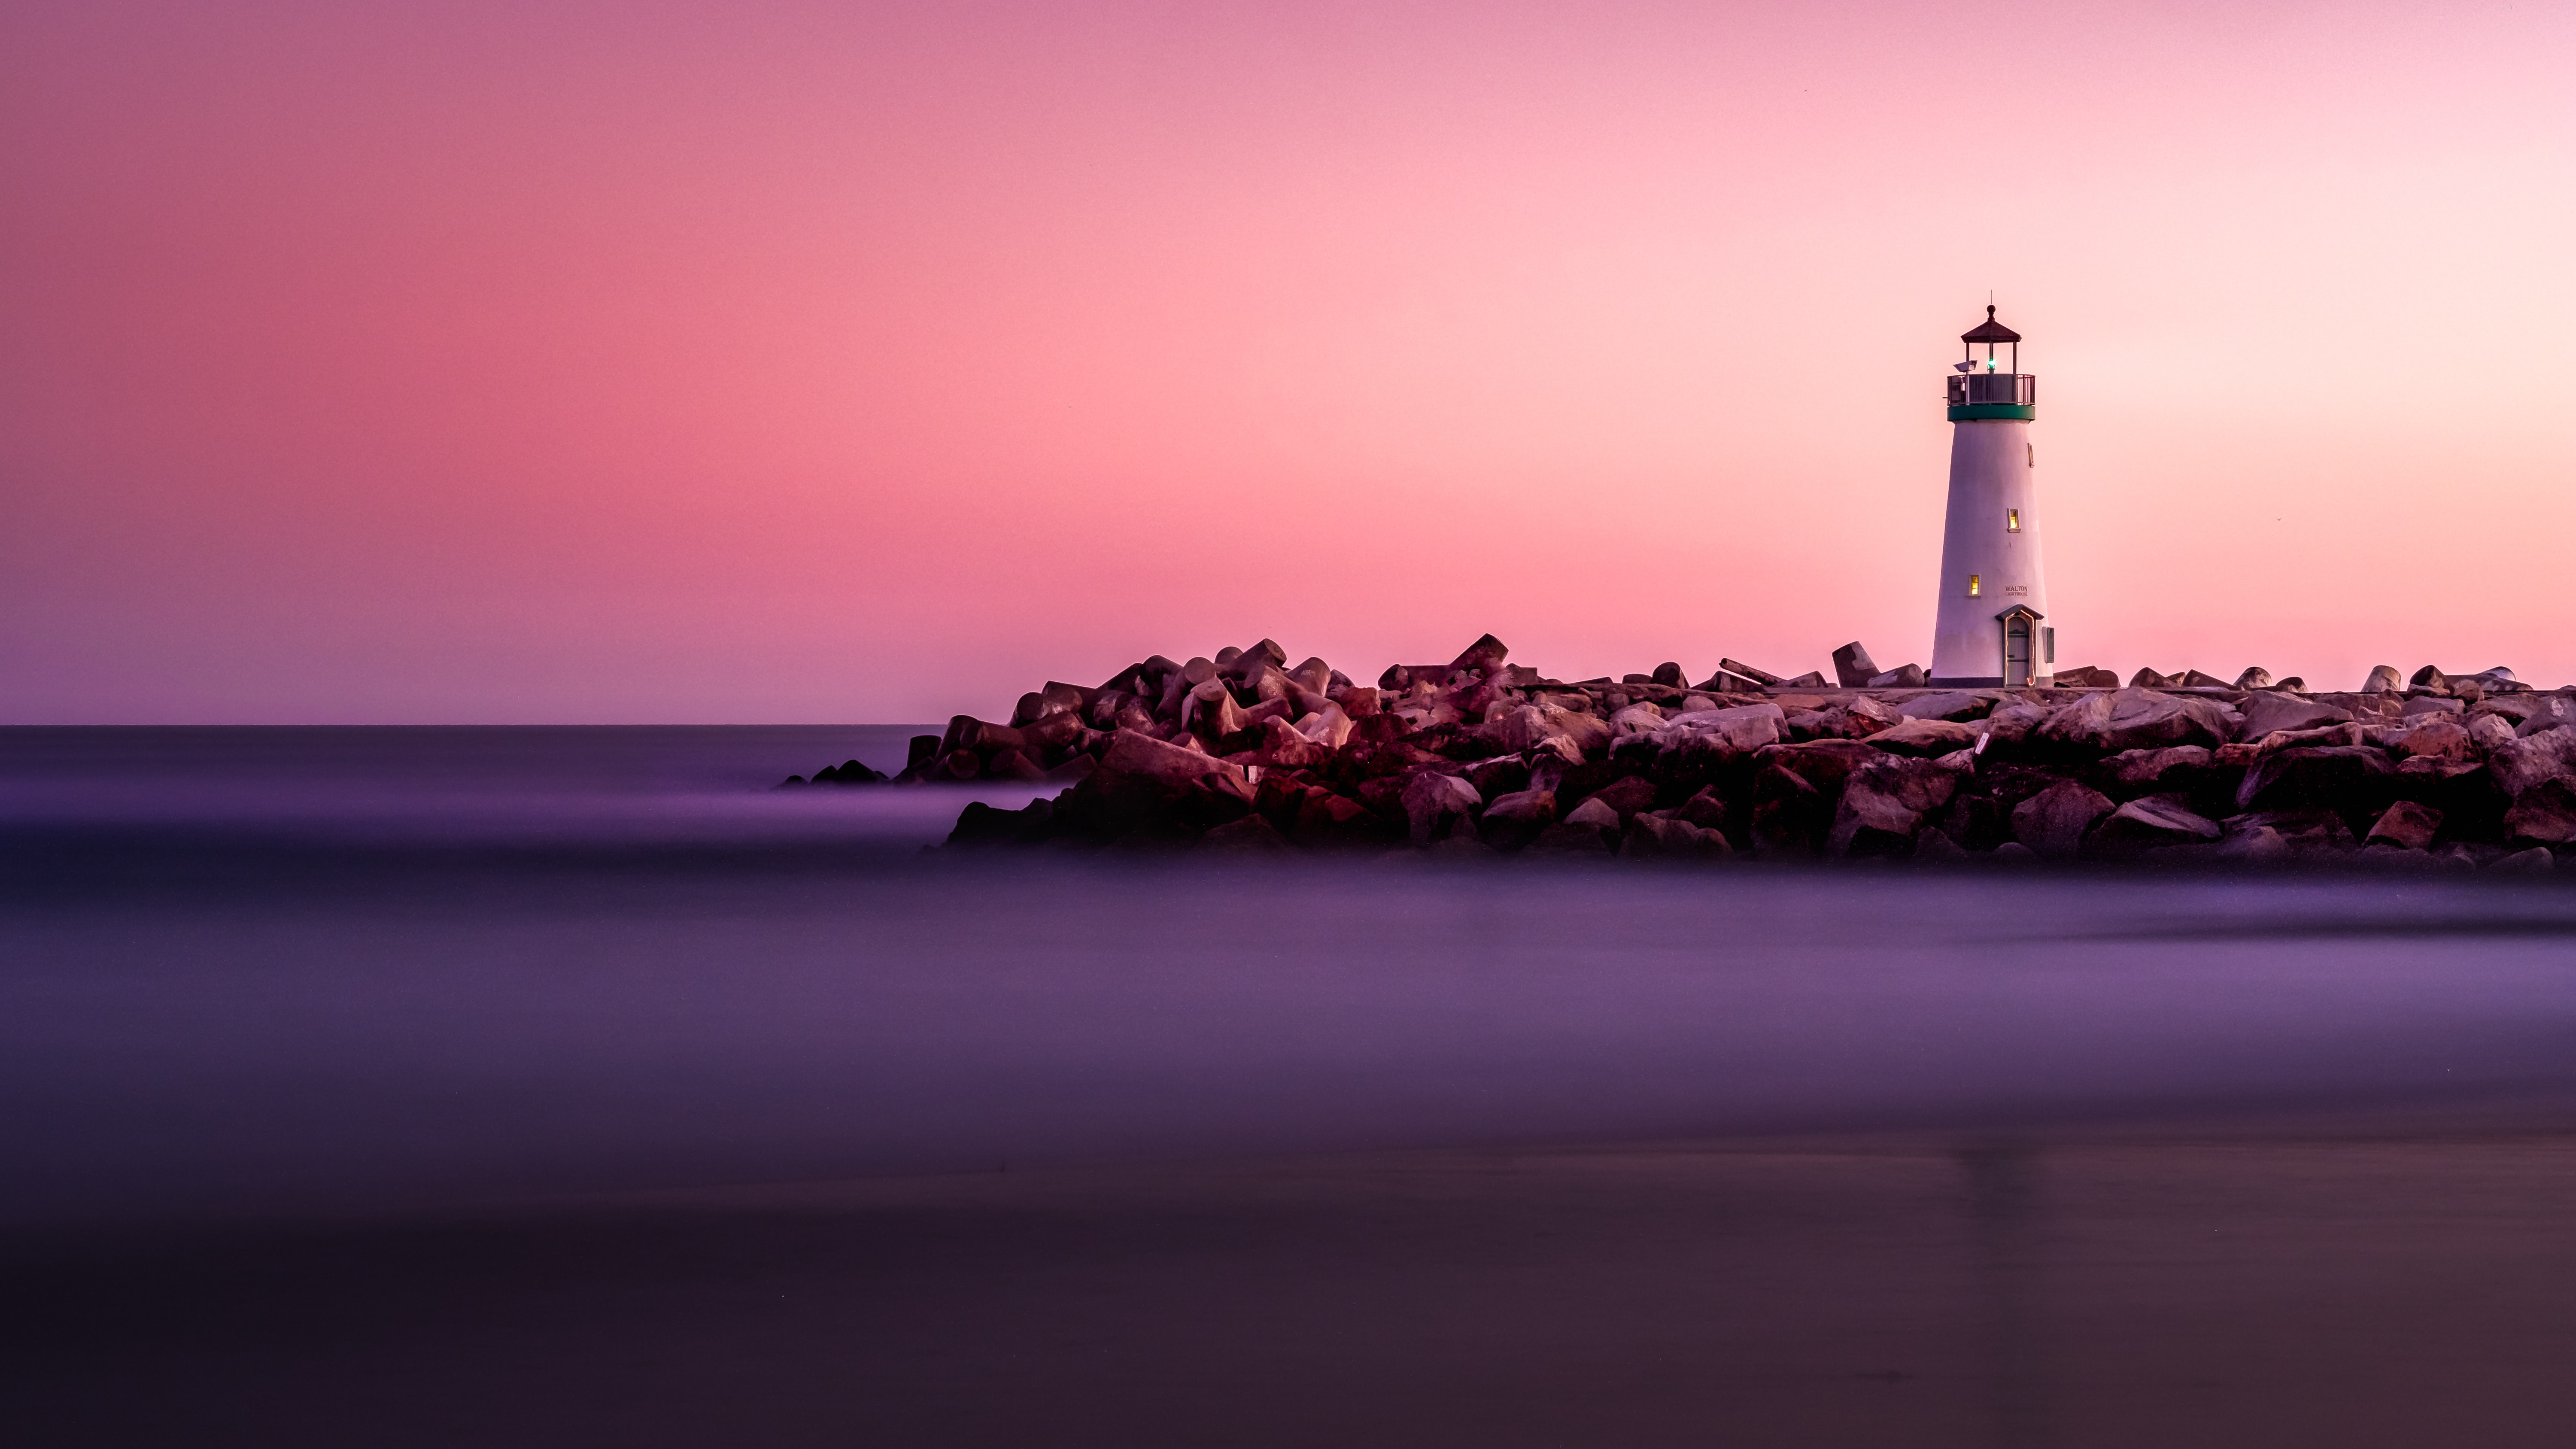 white lighthouse on rocky seashore